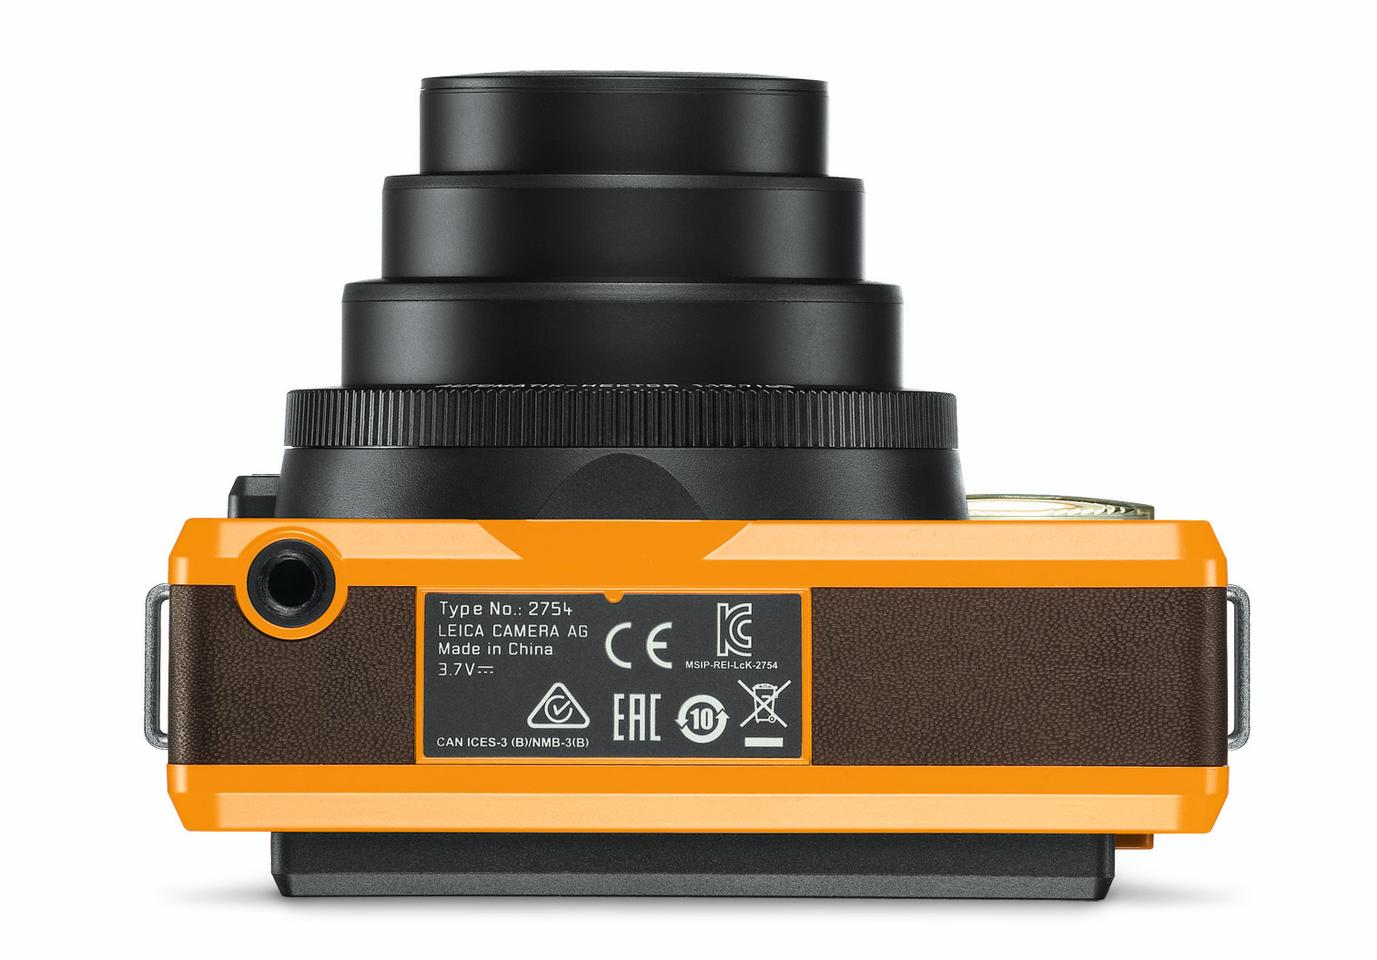 The Leica Sofort instant camera will be available in November